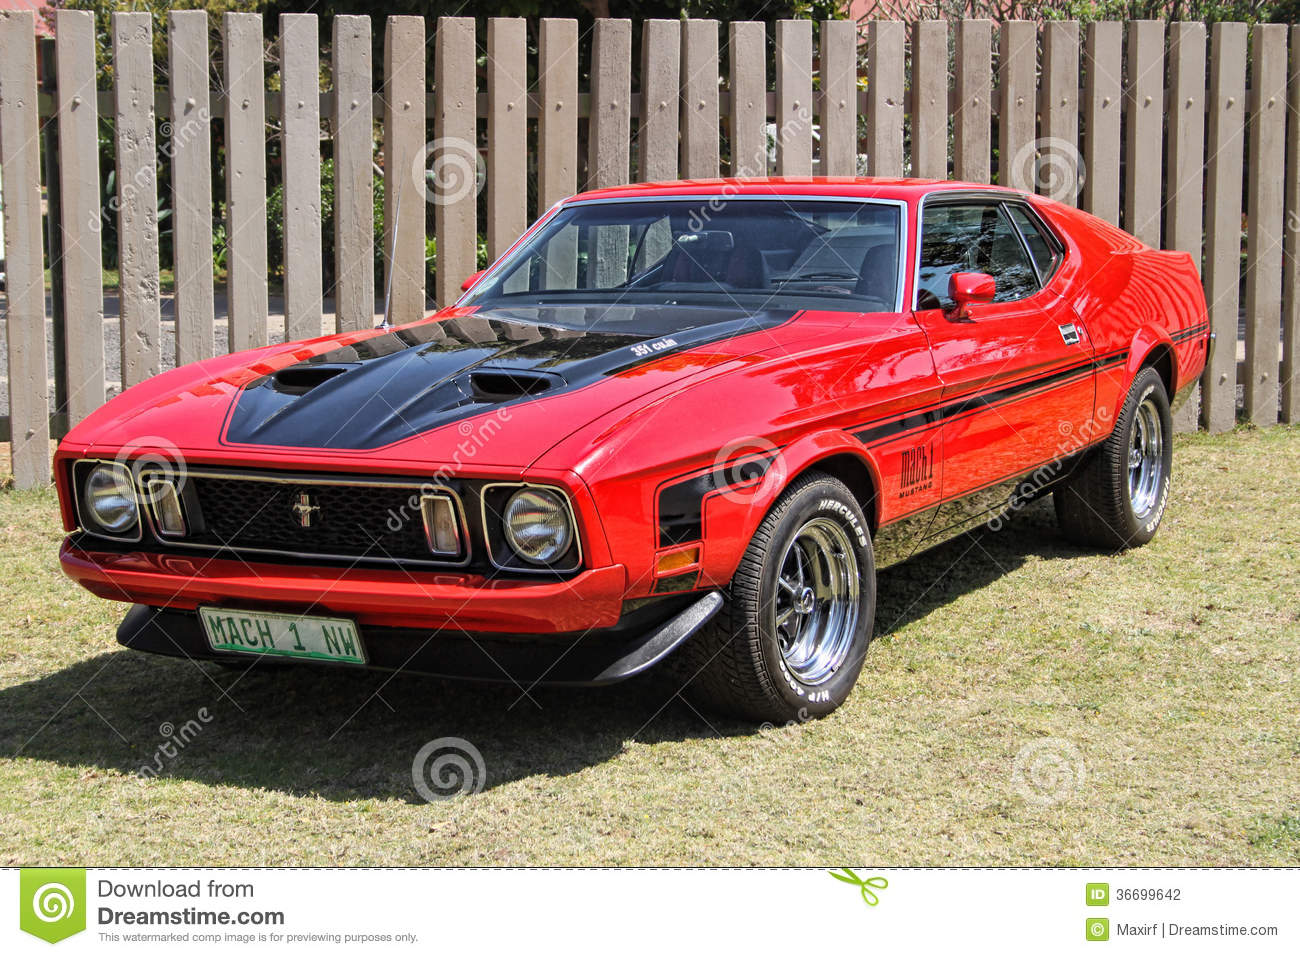 ford mustang mach 1 photographie ditorial image du ditorial 36699642. Black Bedroom Furniture Sets. Home Design Ideas